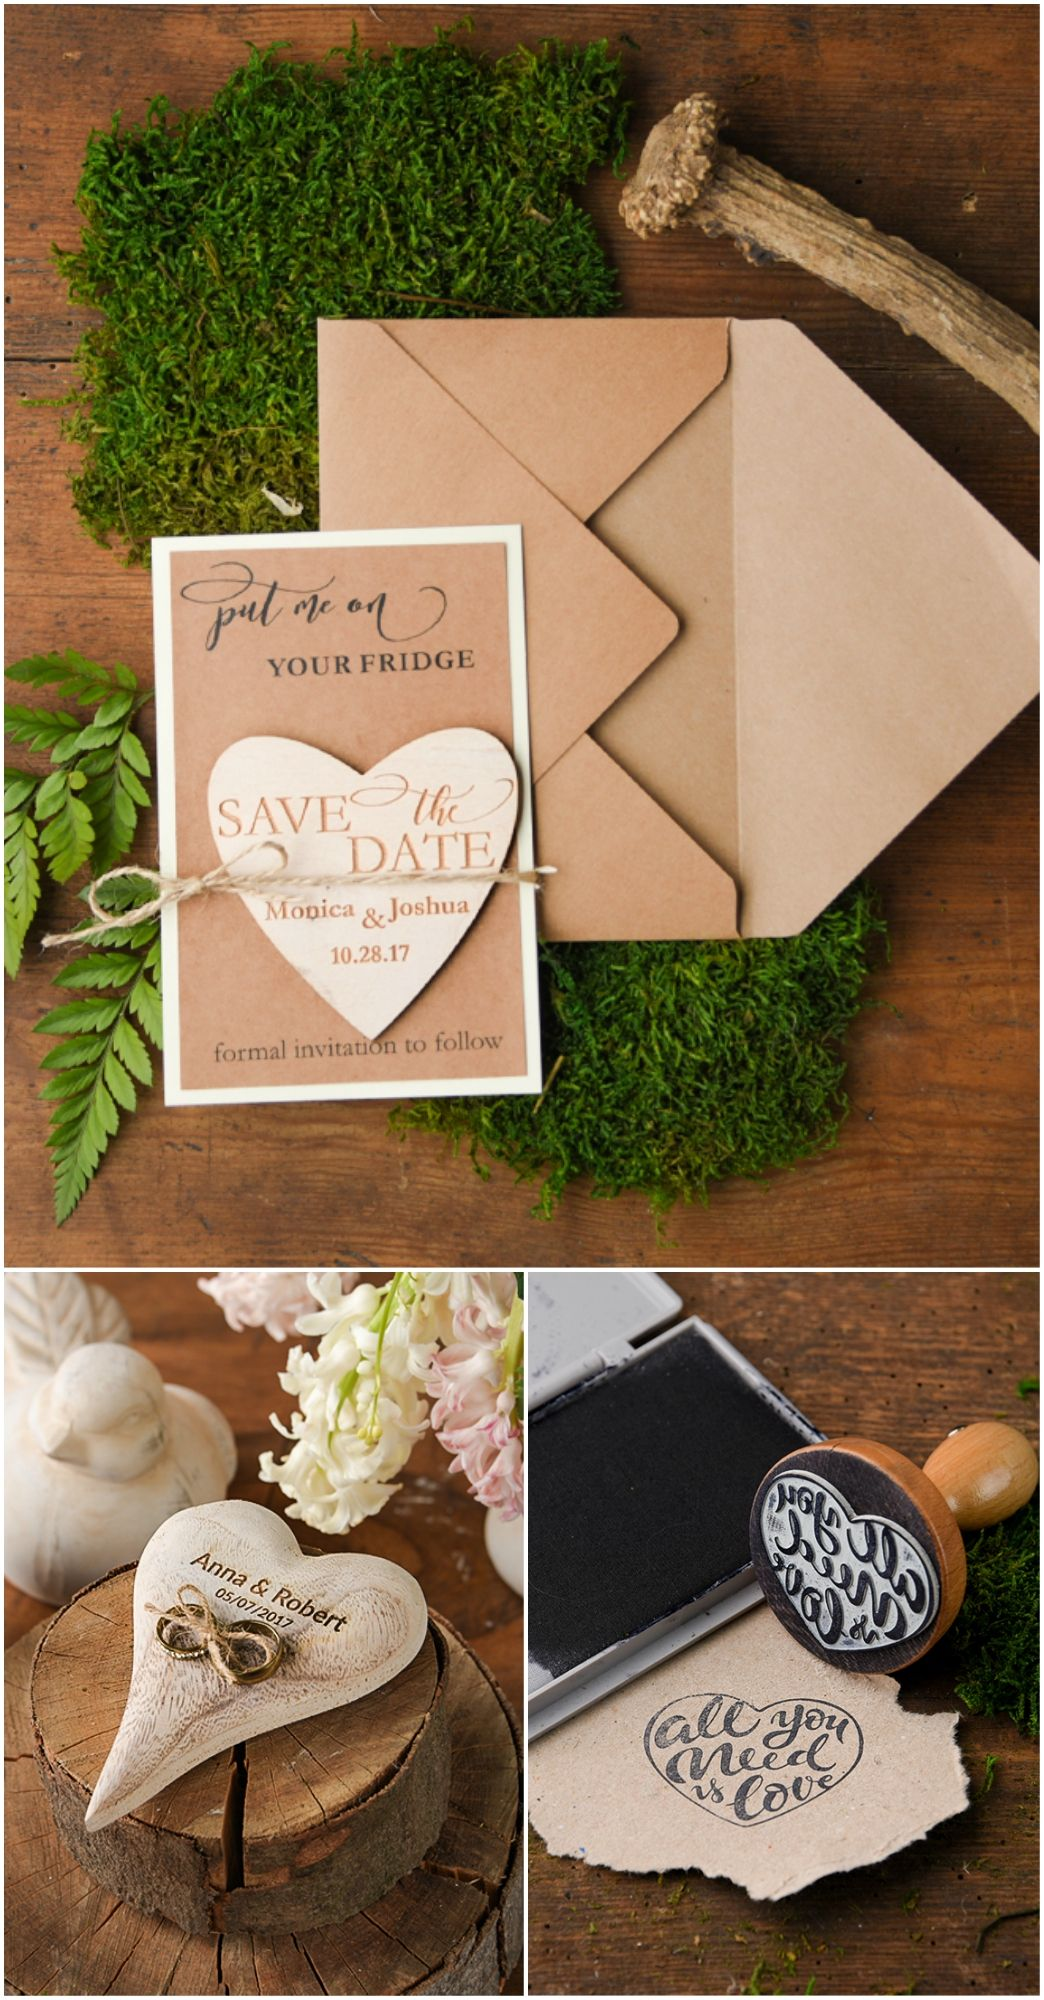 Wedding Invitations Stationery Accessories DesignInvitations